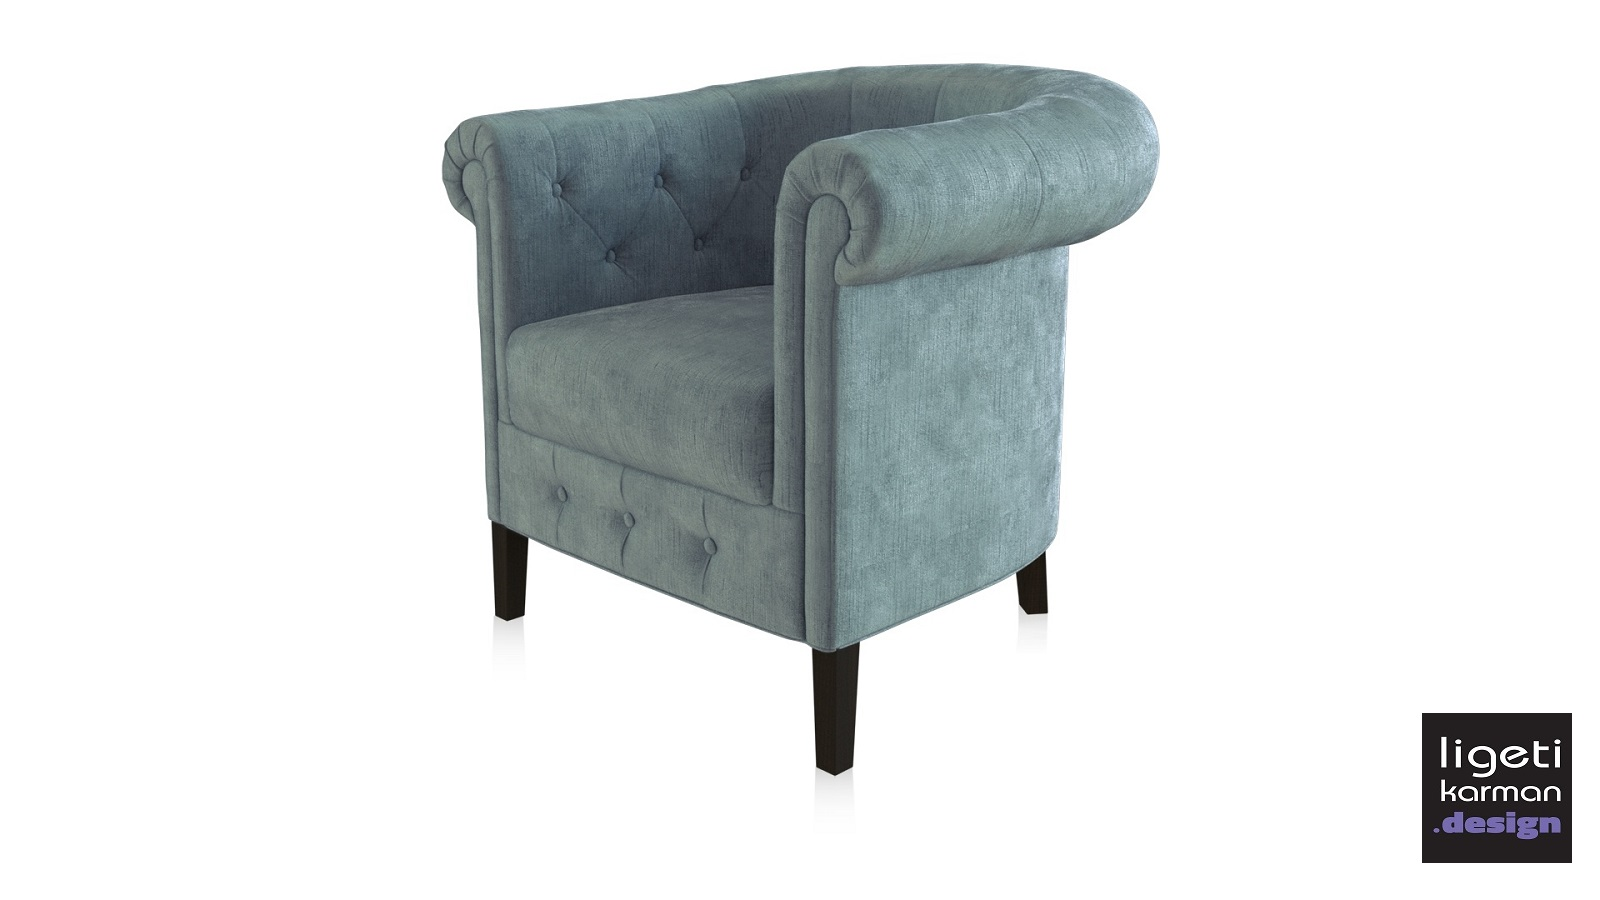 miotto_Pitto armchair blue t